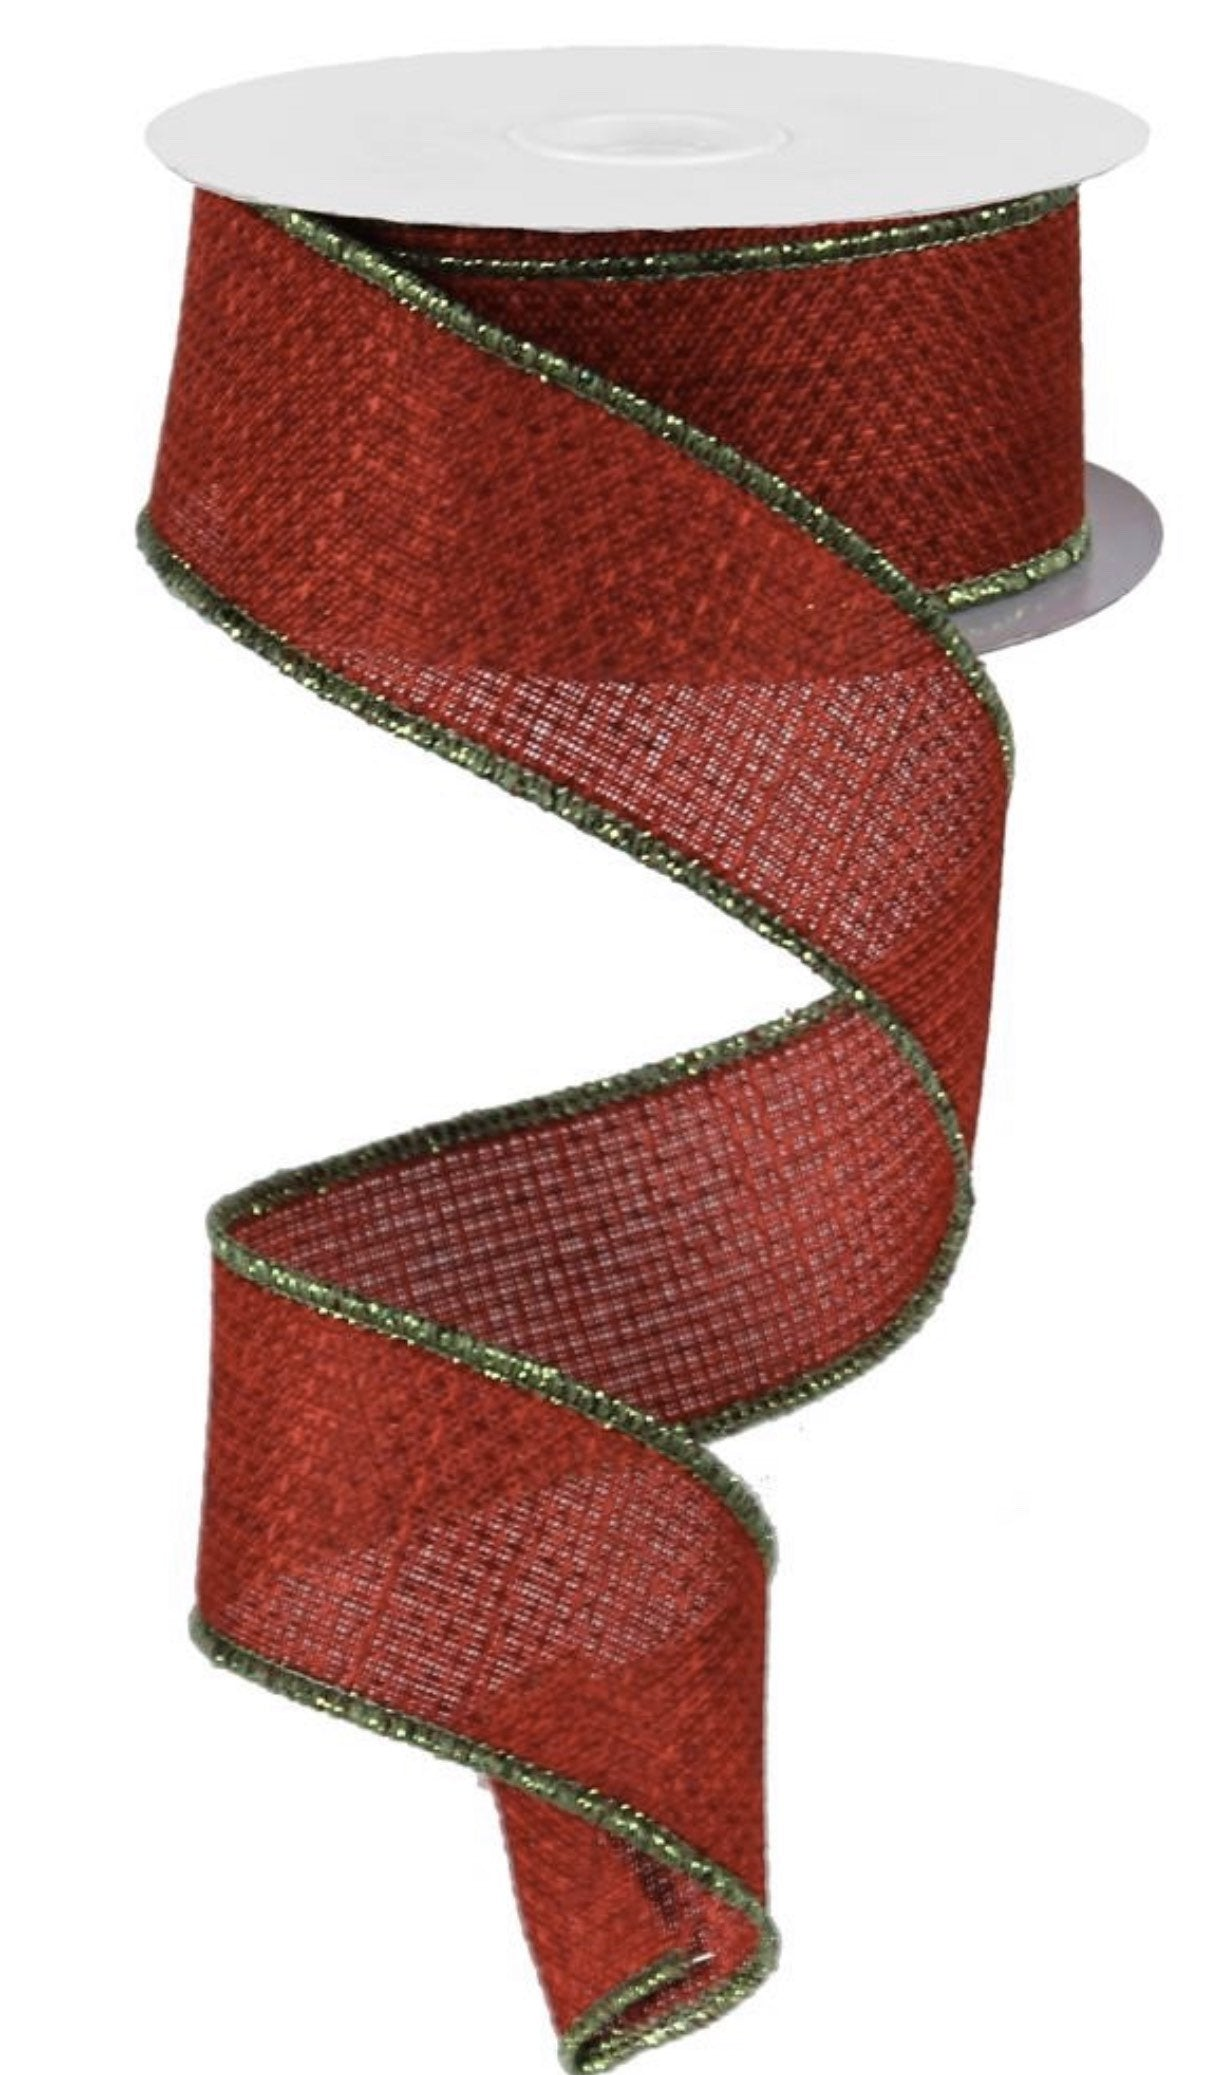 "10 YARDS solid Burgundy with Green shimmer edge ribbon 1.5"" wired solid ribbon, ribbon for wreaths, wreath supplies, Christmas Ribbons,"